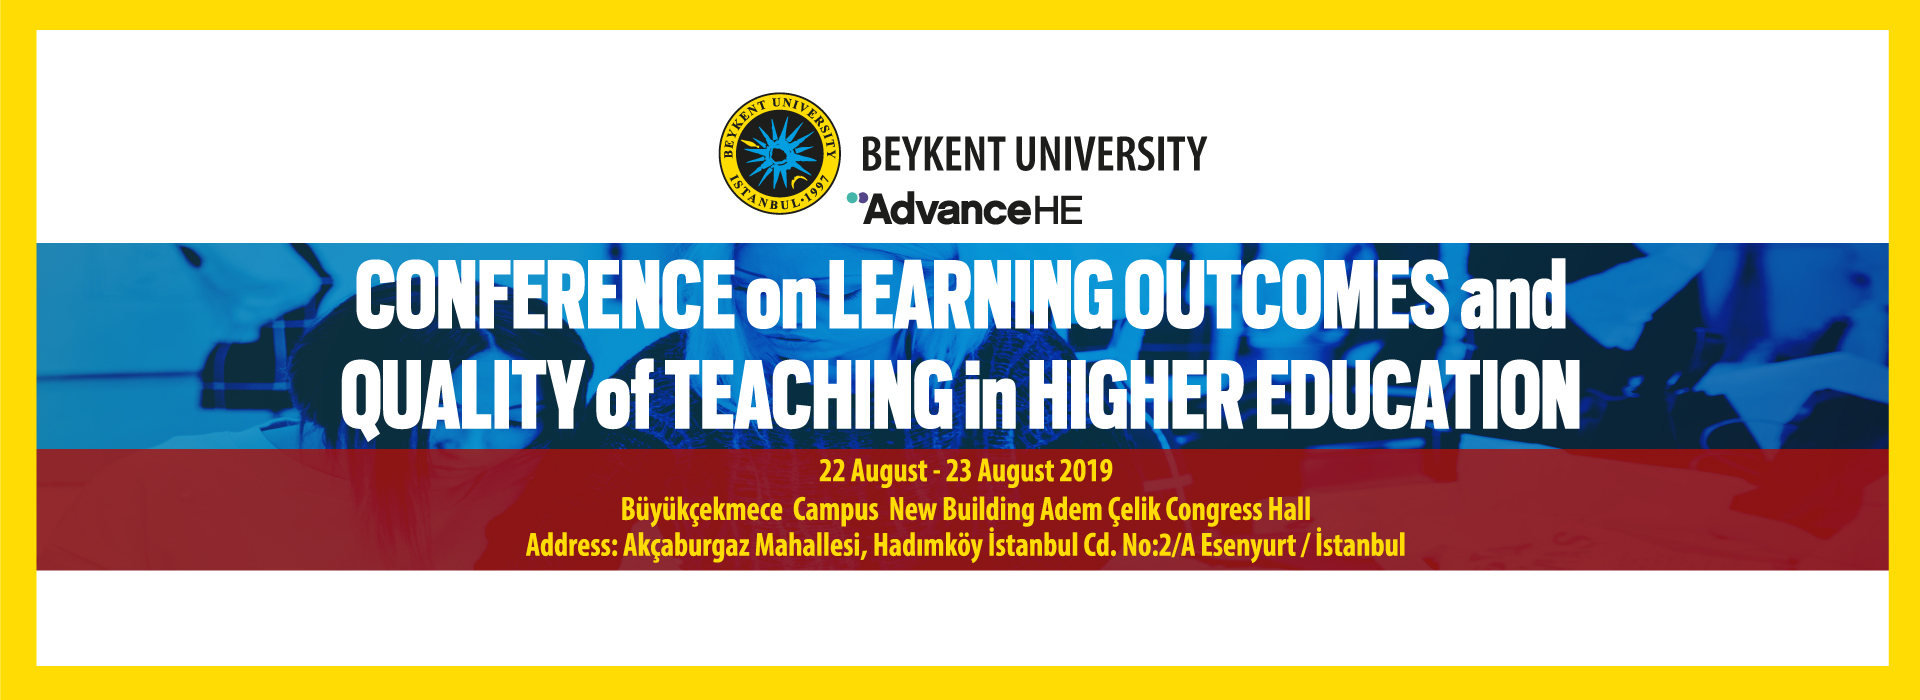 Advance_ConferenceonLearning_1920x700